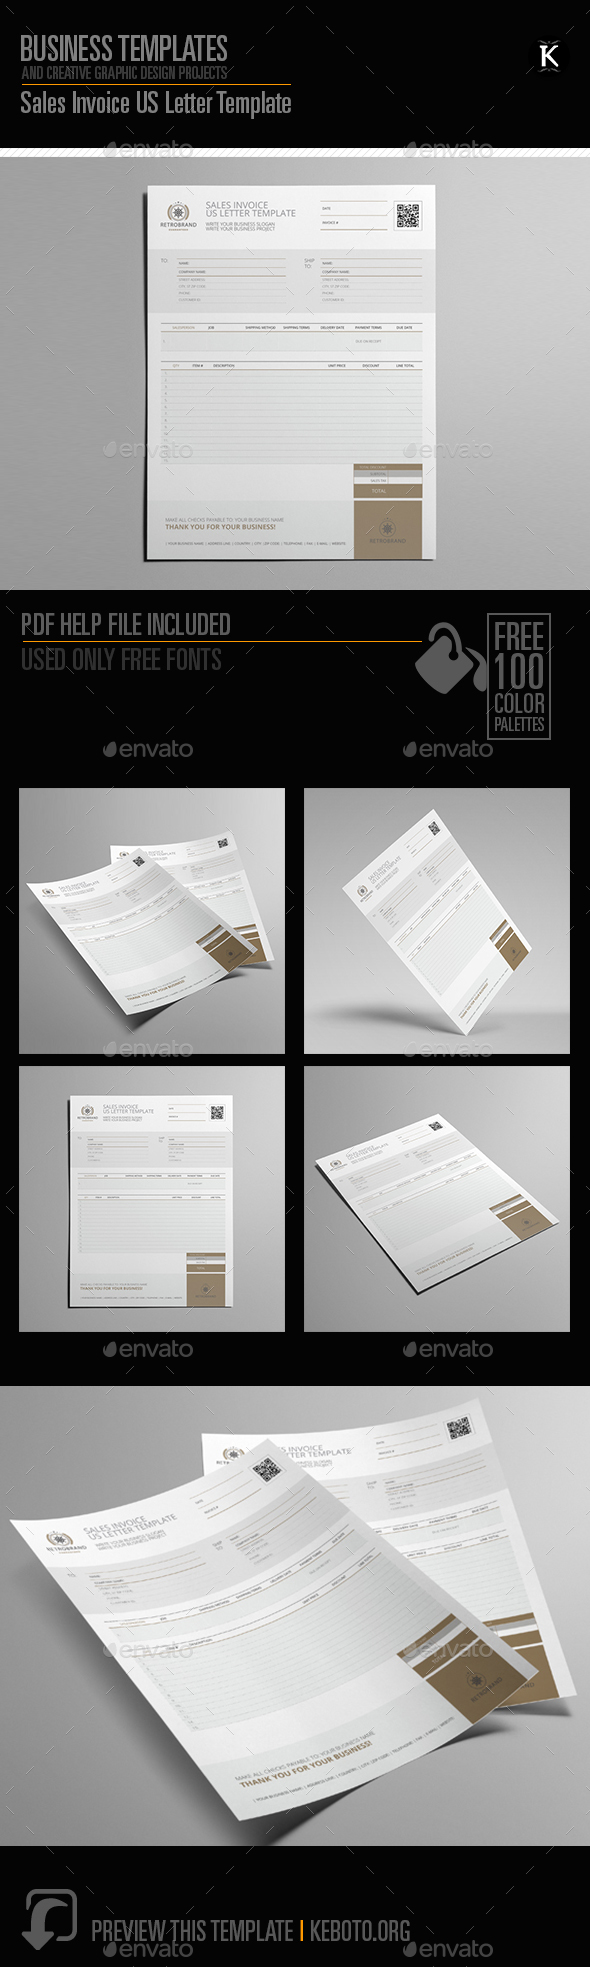 Sales Invoice US Letter Template - Proposals & Invoices Stationery